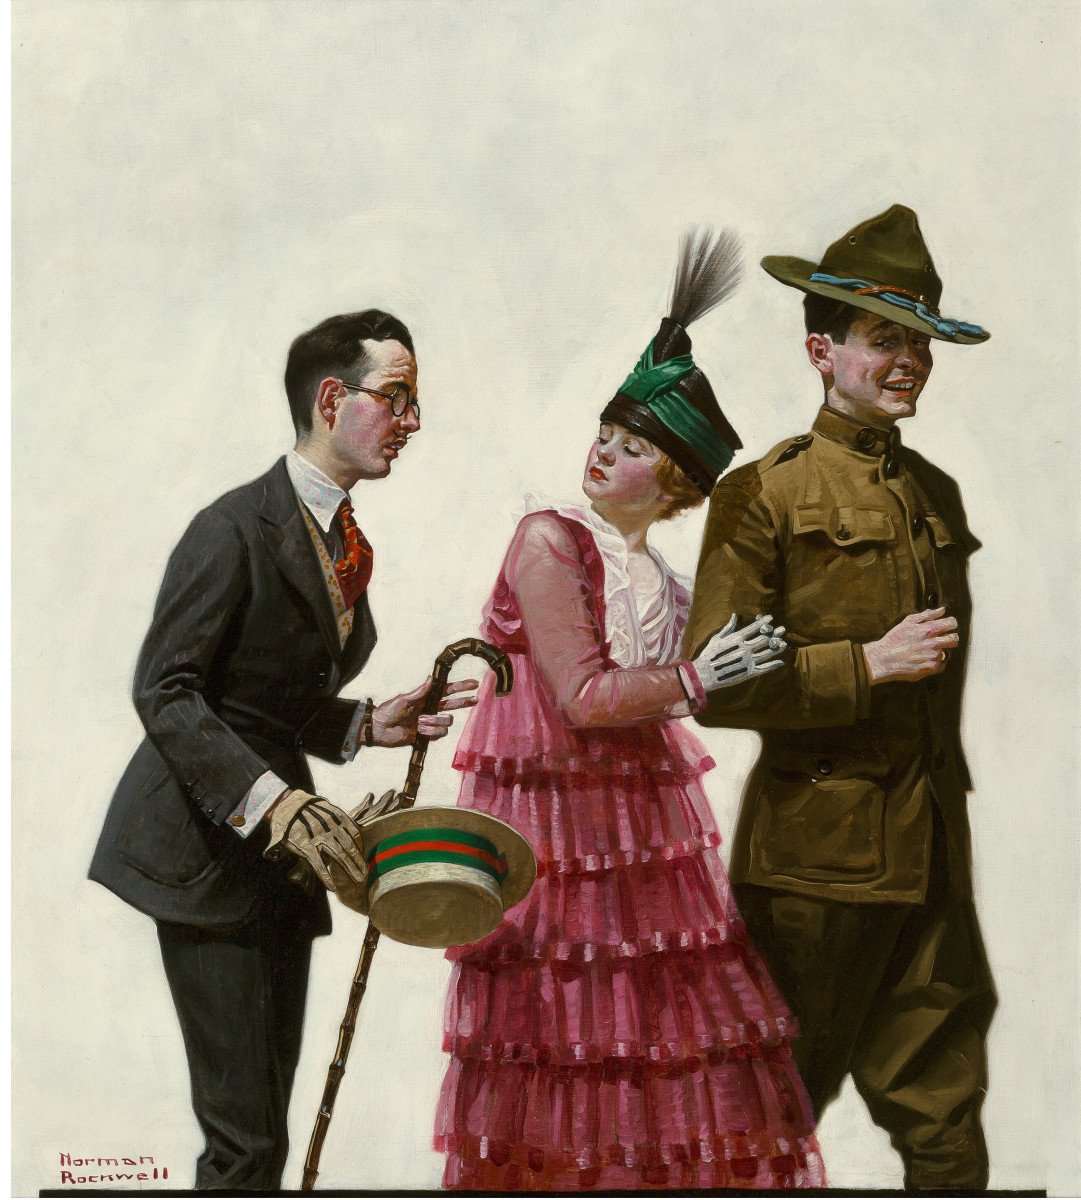 Norman Rockwell's Excuse Me! is expected to fetch more than $400,000.